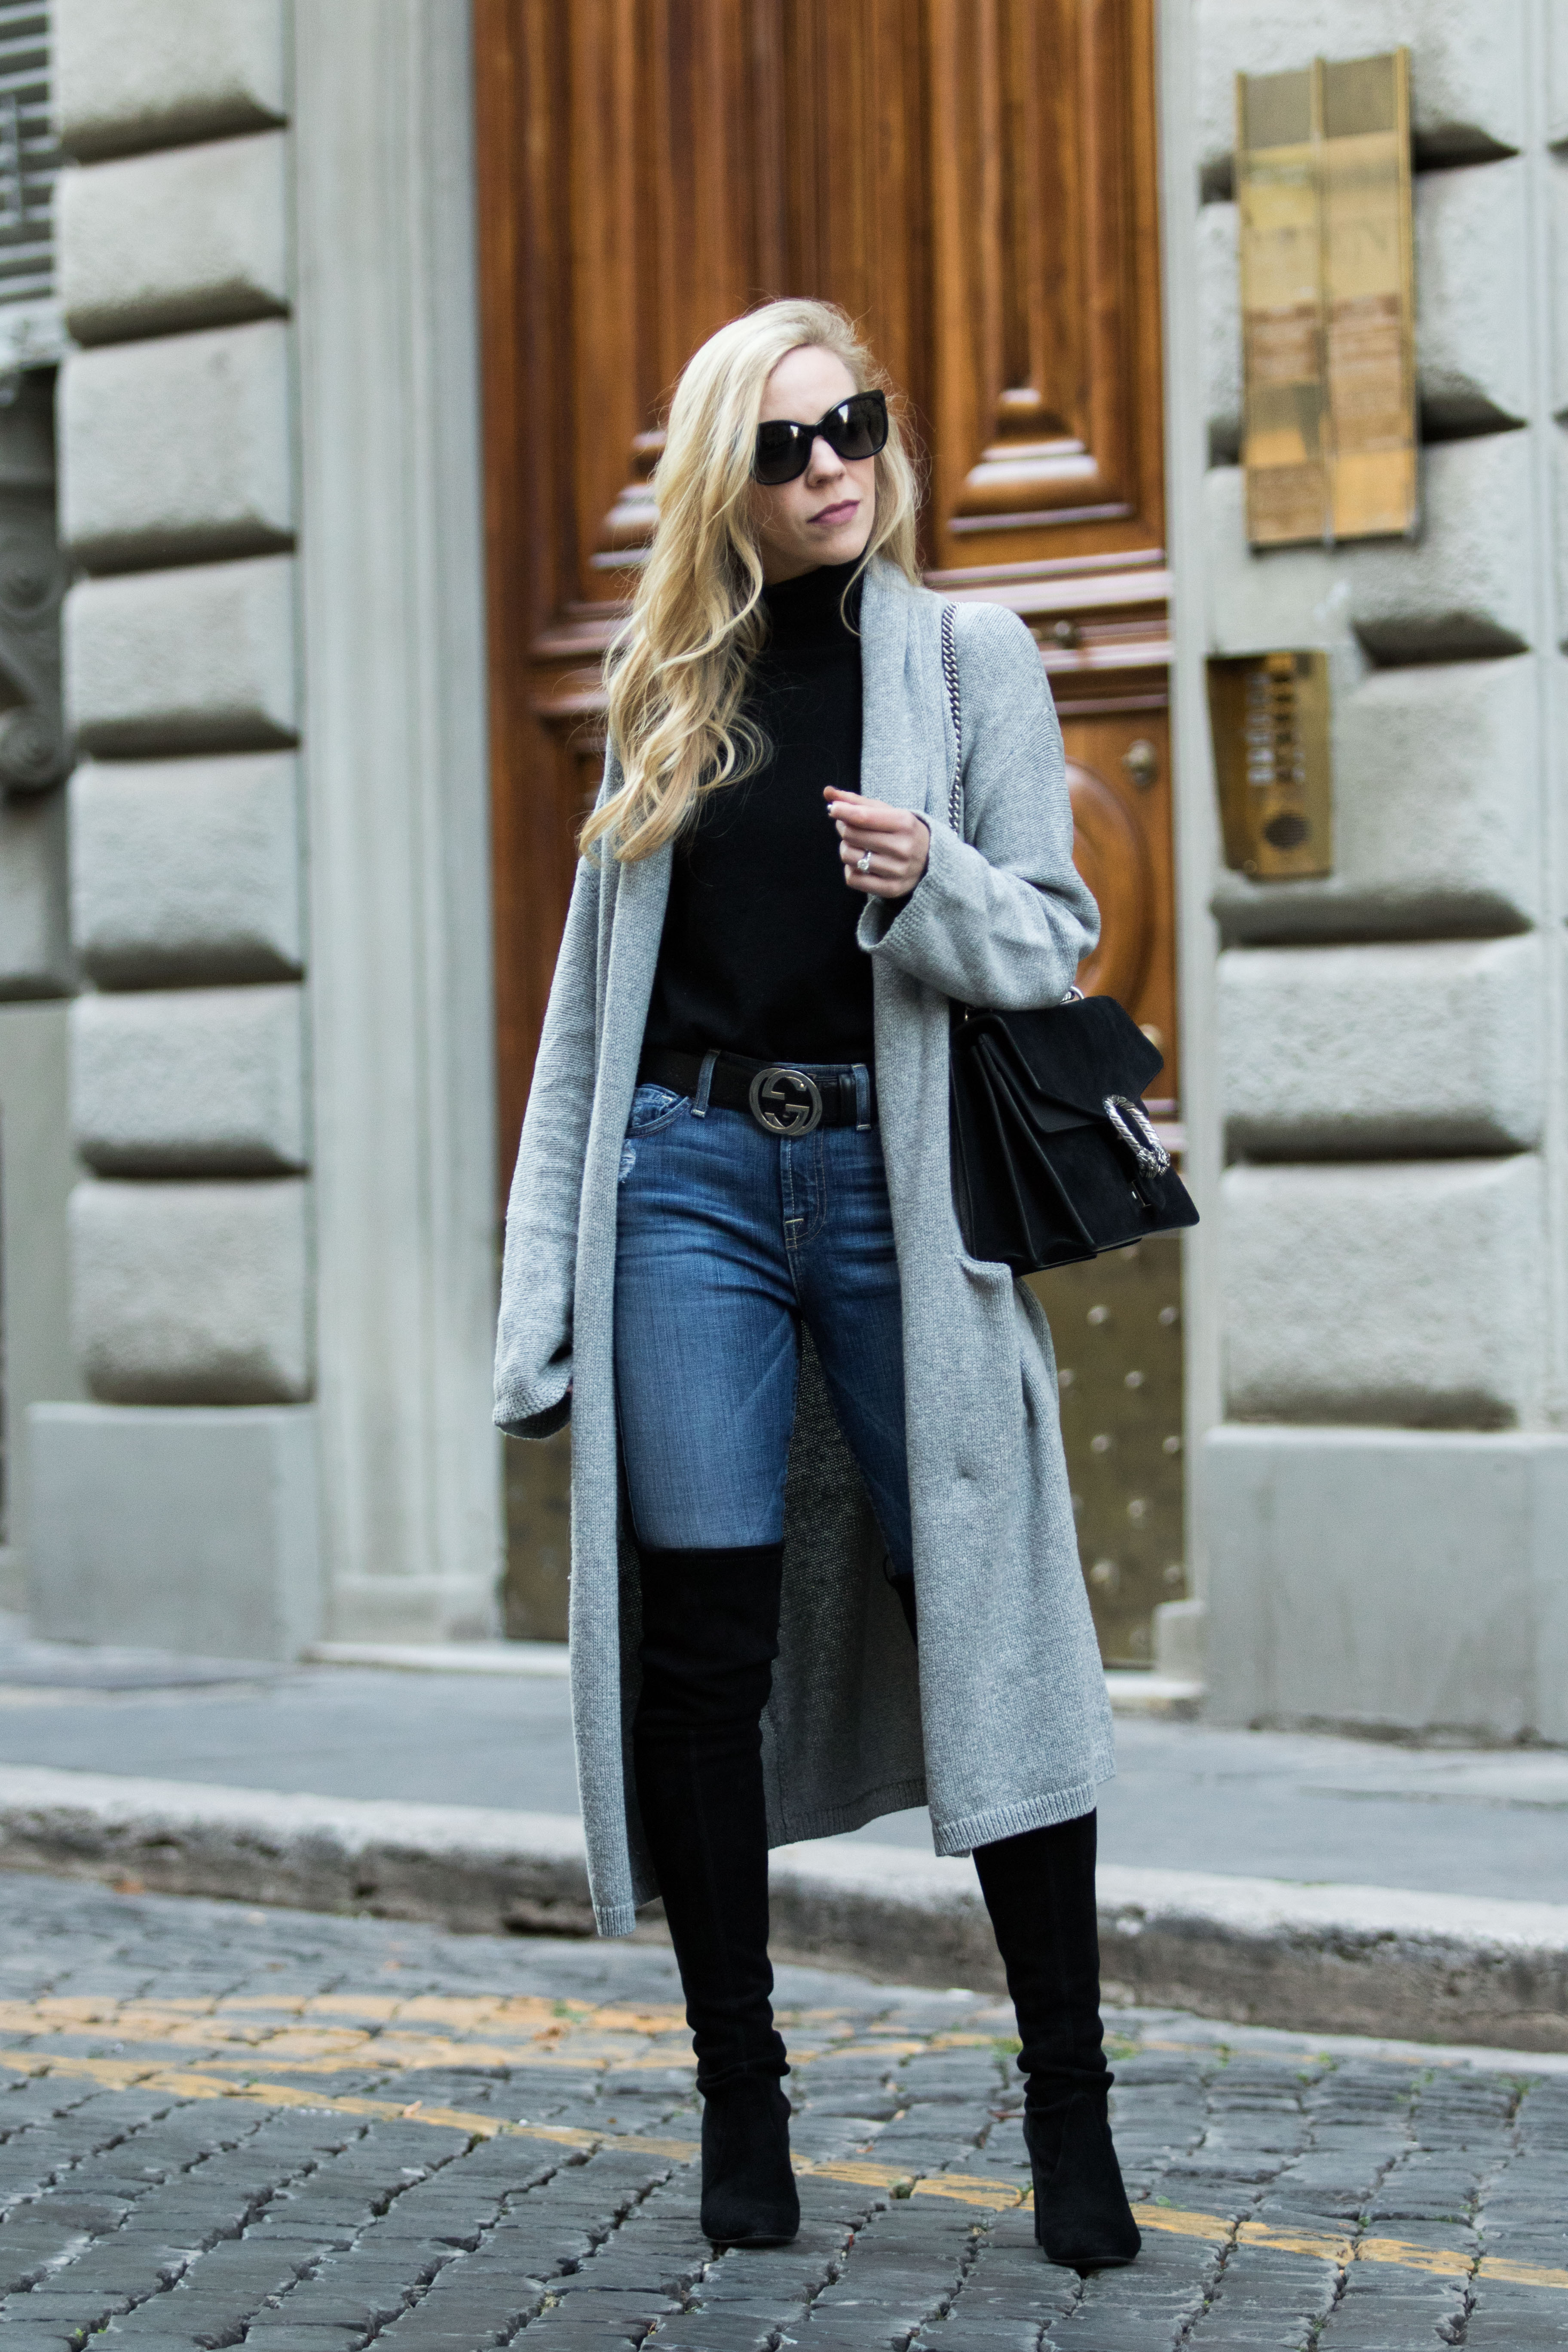 Rome Street Style: Maxi Cardigan, High Waist Jeans & Over-the-Knee ...